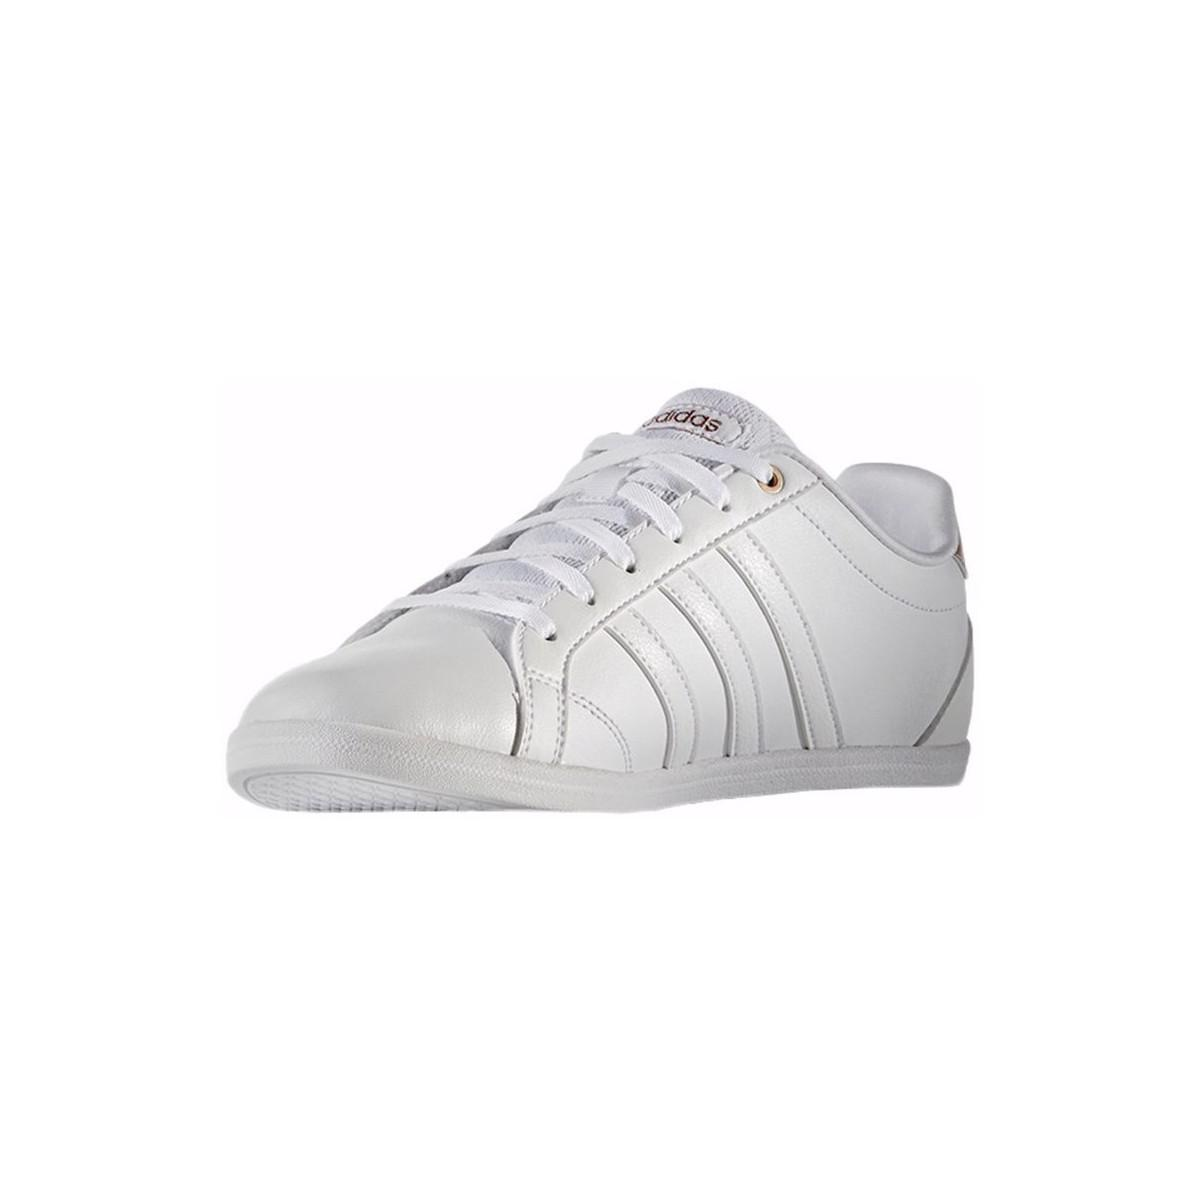 all white adidas shoes womens 890459